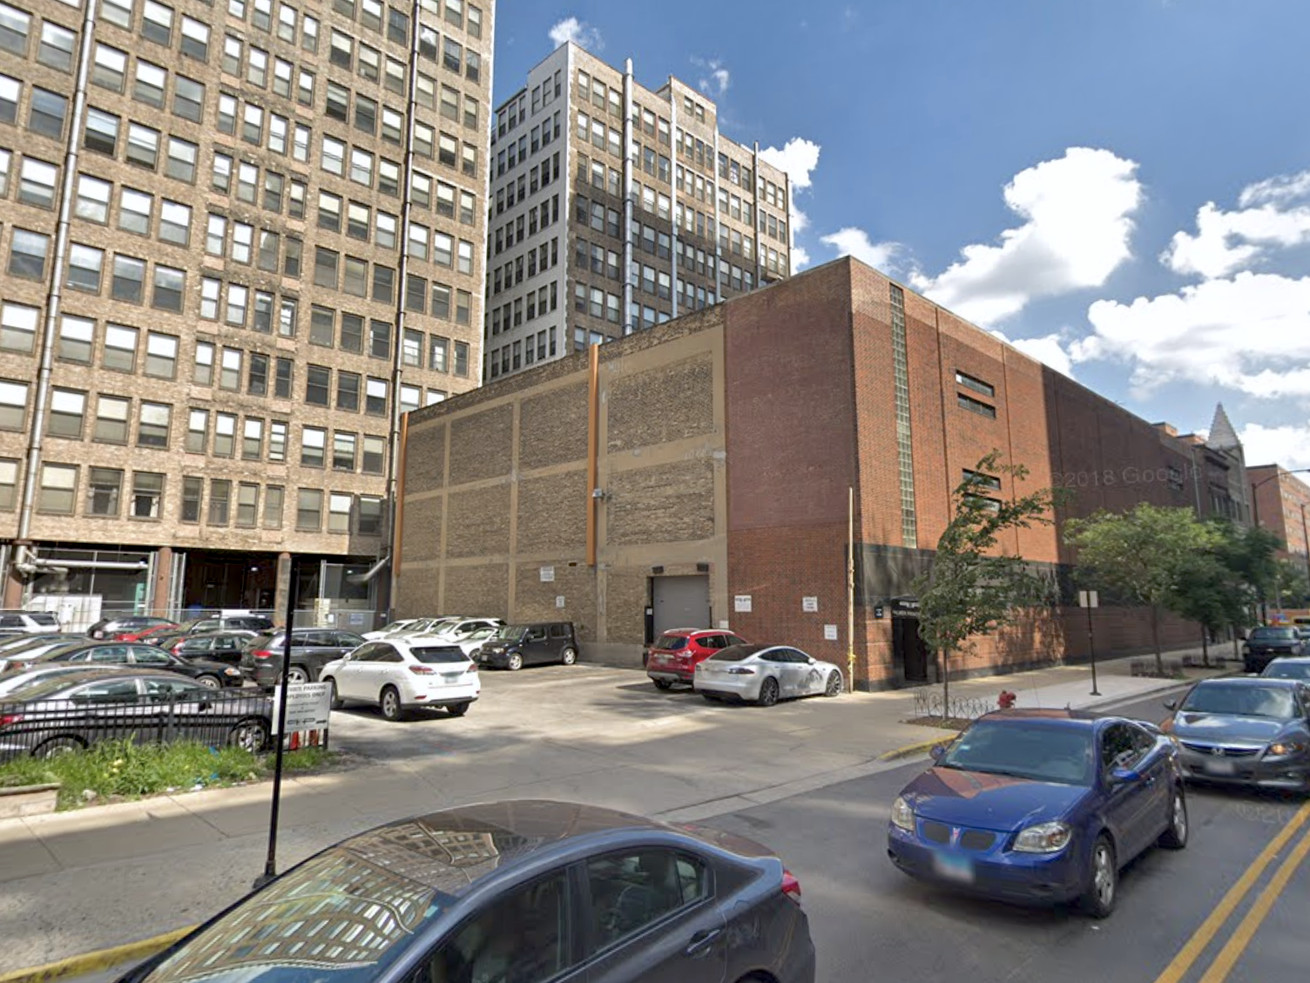 The project would transform the 700 block of South Clark Street.